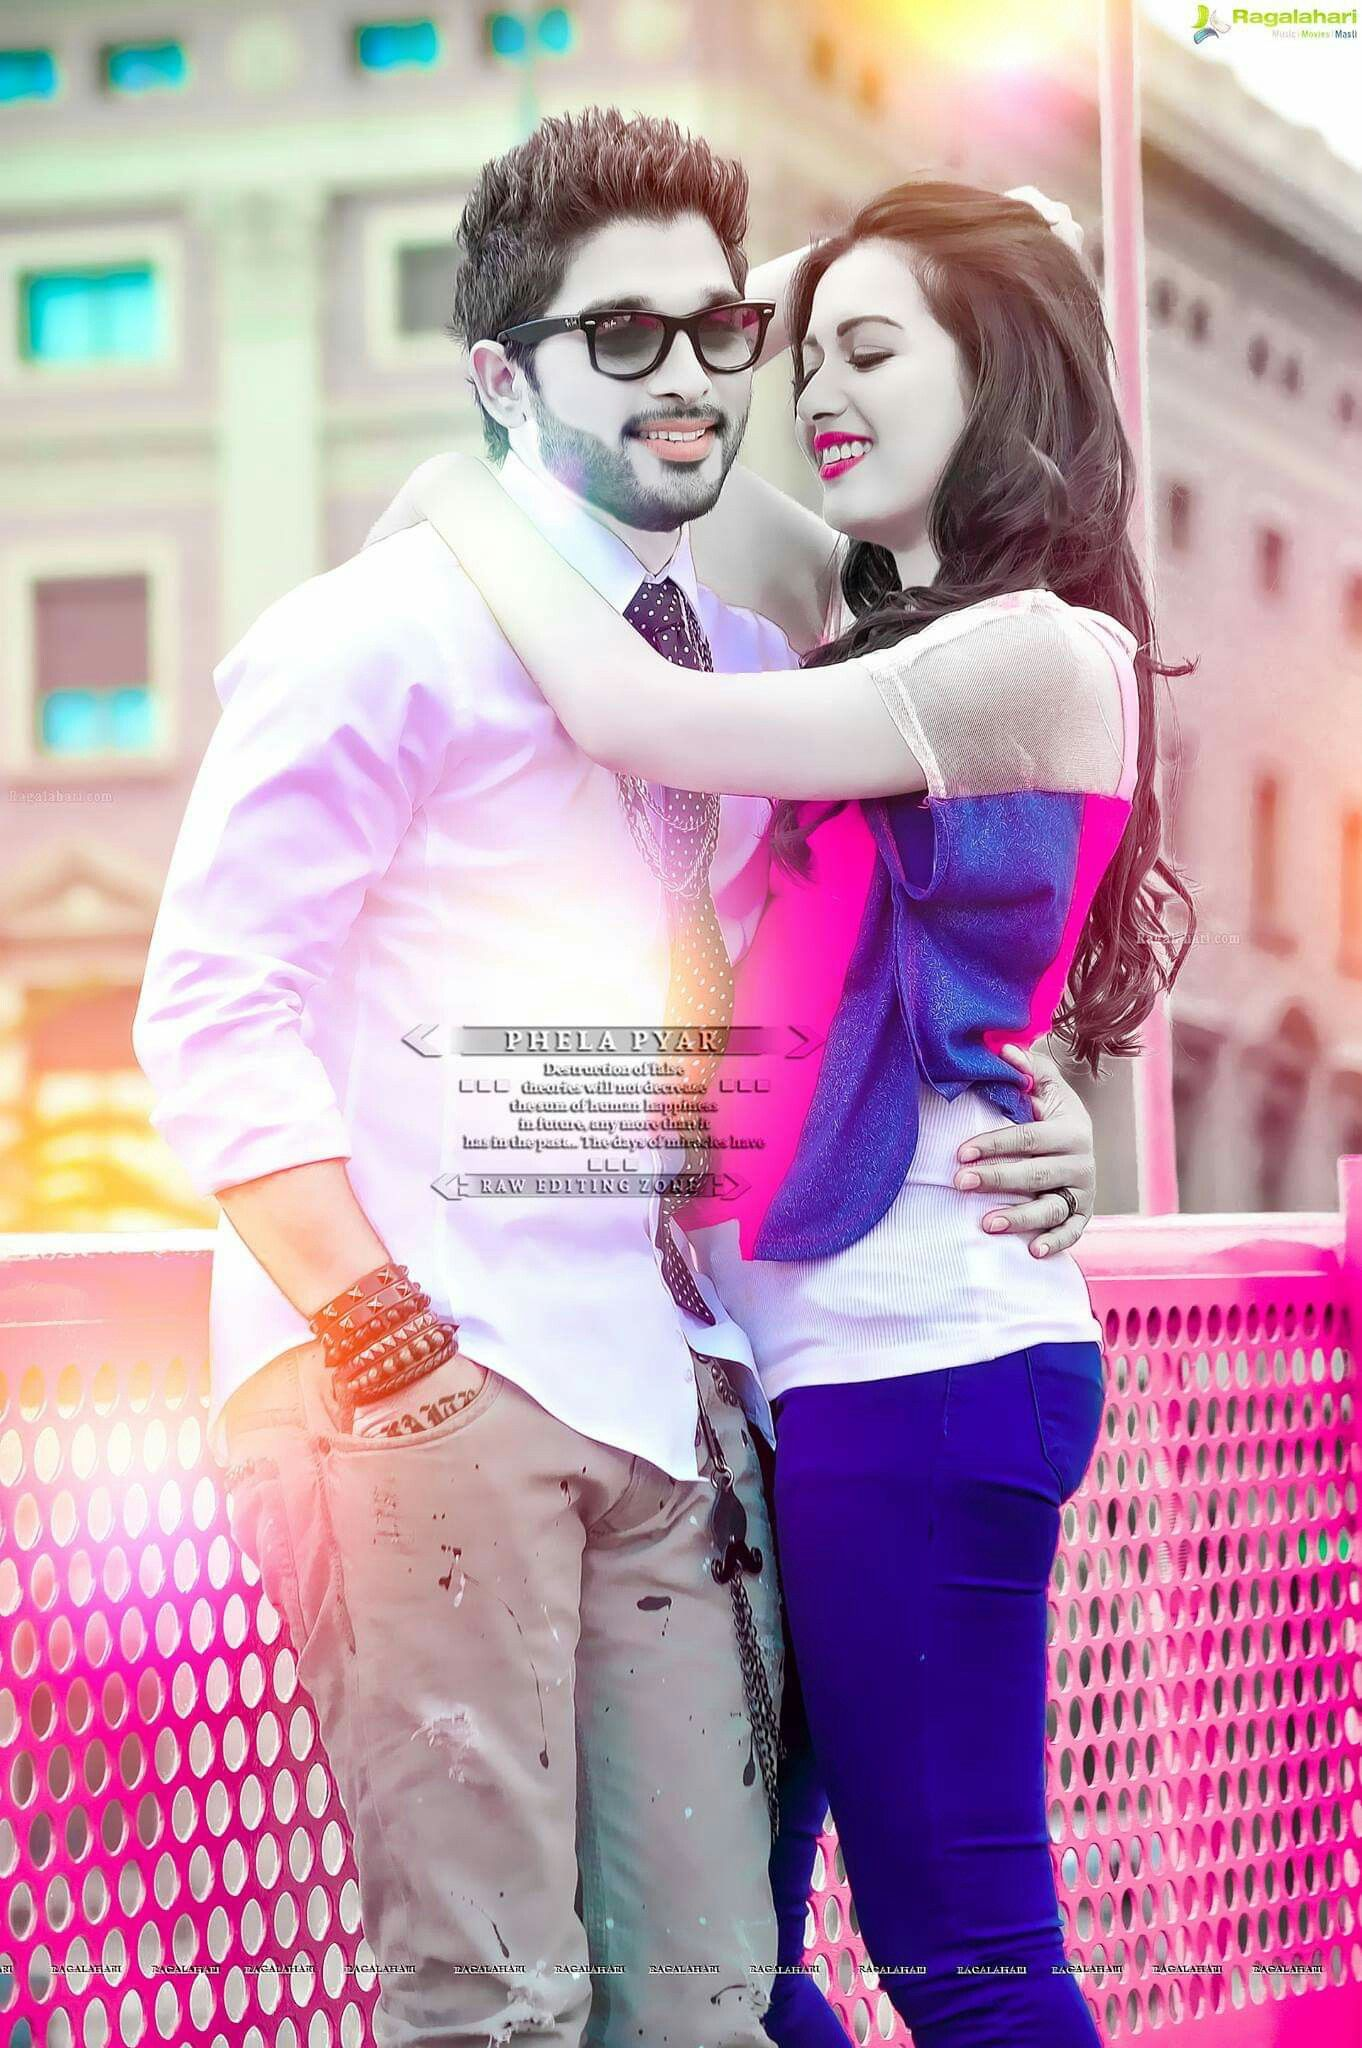 L Oev E Stylish Girls Photos Romantic Photoshoot Romantic